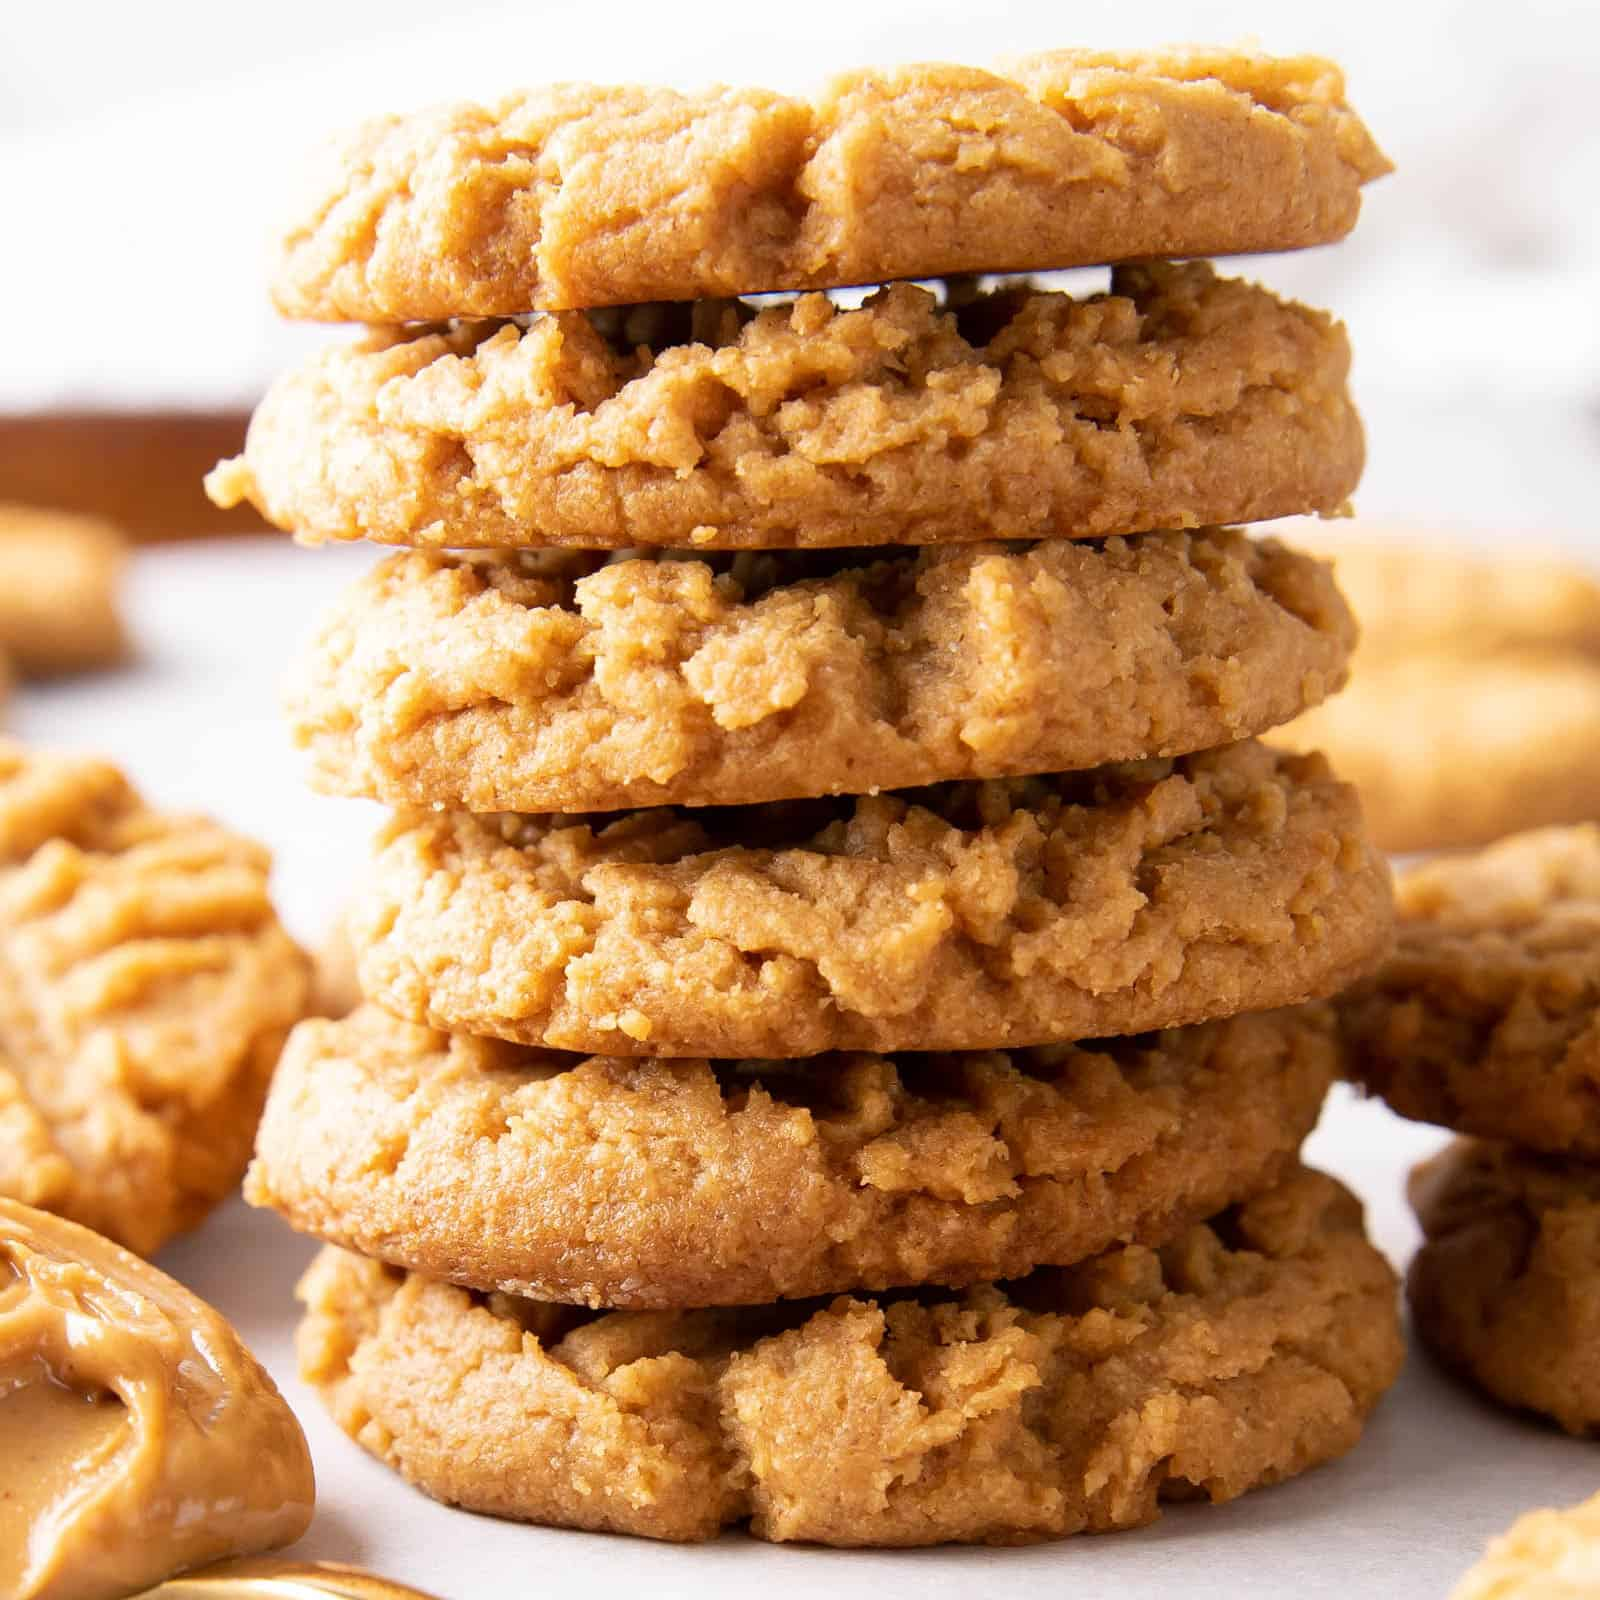 Keto Peanut Butter Cookies (Keto, Low Carb): this keto peanut butter cookie recipe is made with 4 ingredients, EASY and delicious! The best keto PB cookies—Keto-friendly, low carb, gluten free and vegan. #Keto #KetoDessert #LowCarb #PeanutButter | Recipe at BeamingBaker.com